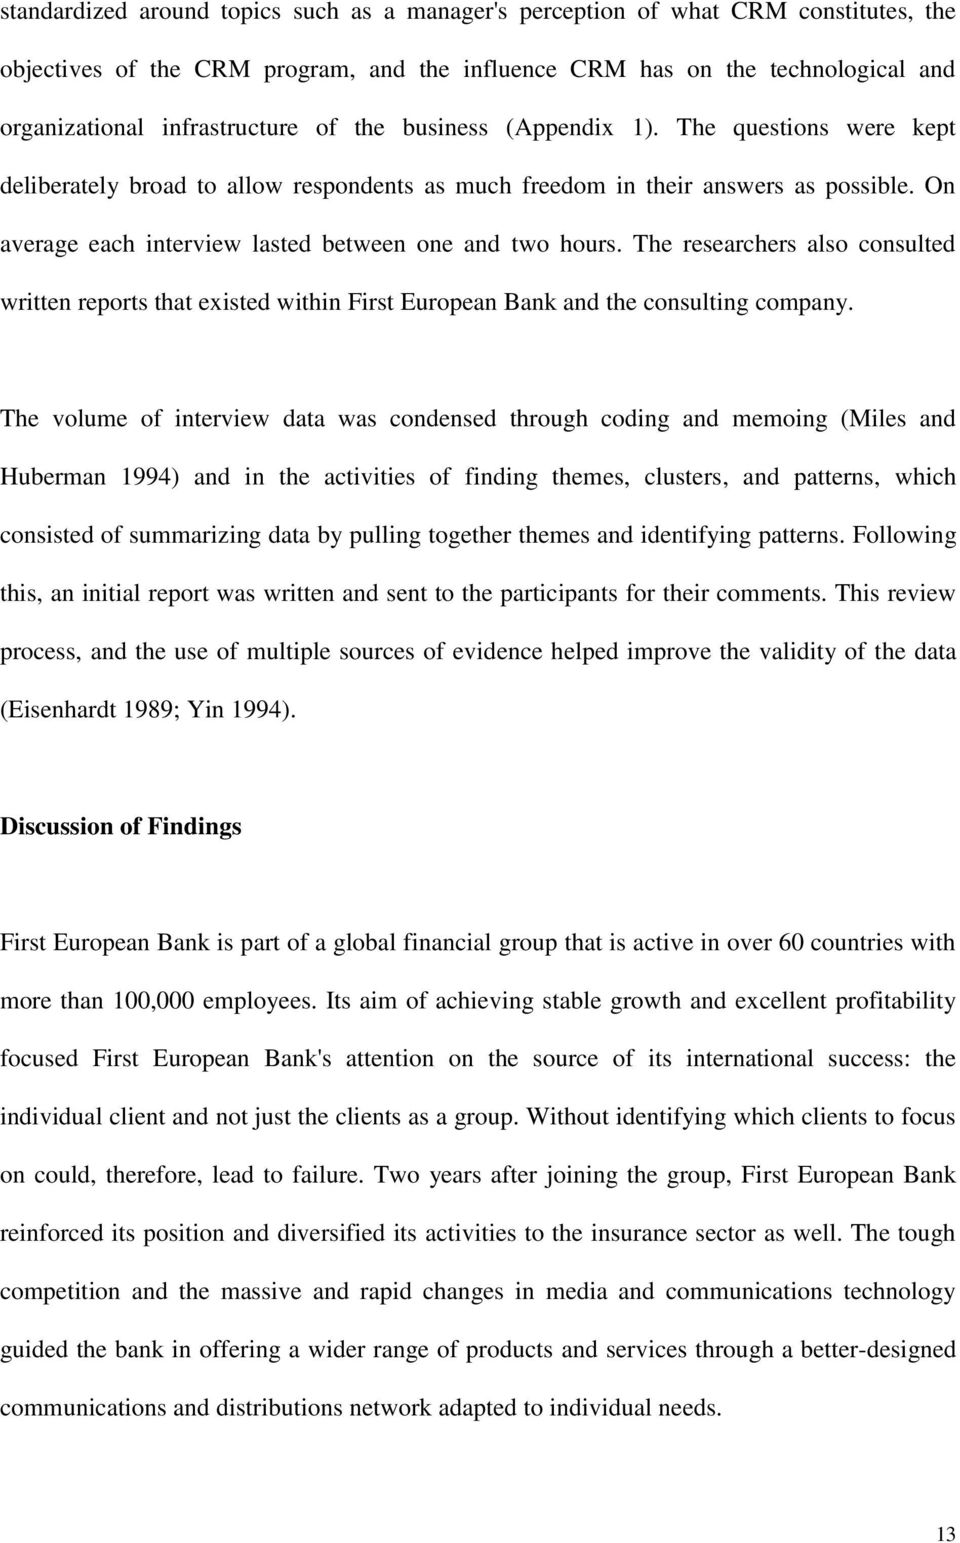 The researchers also consulted written reports that existed within First European Bank and the consulting company.